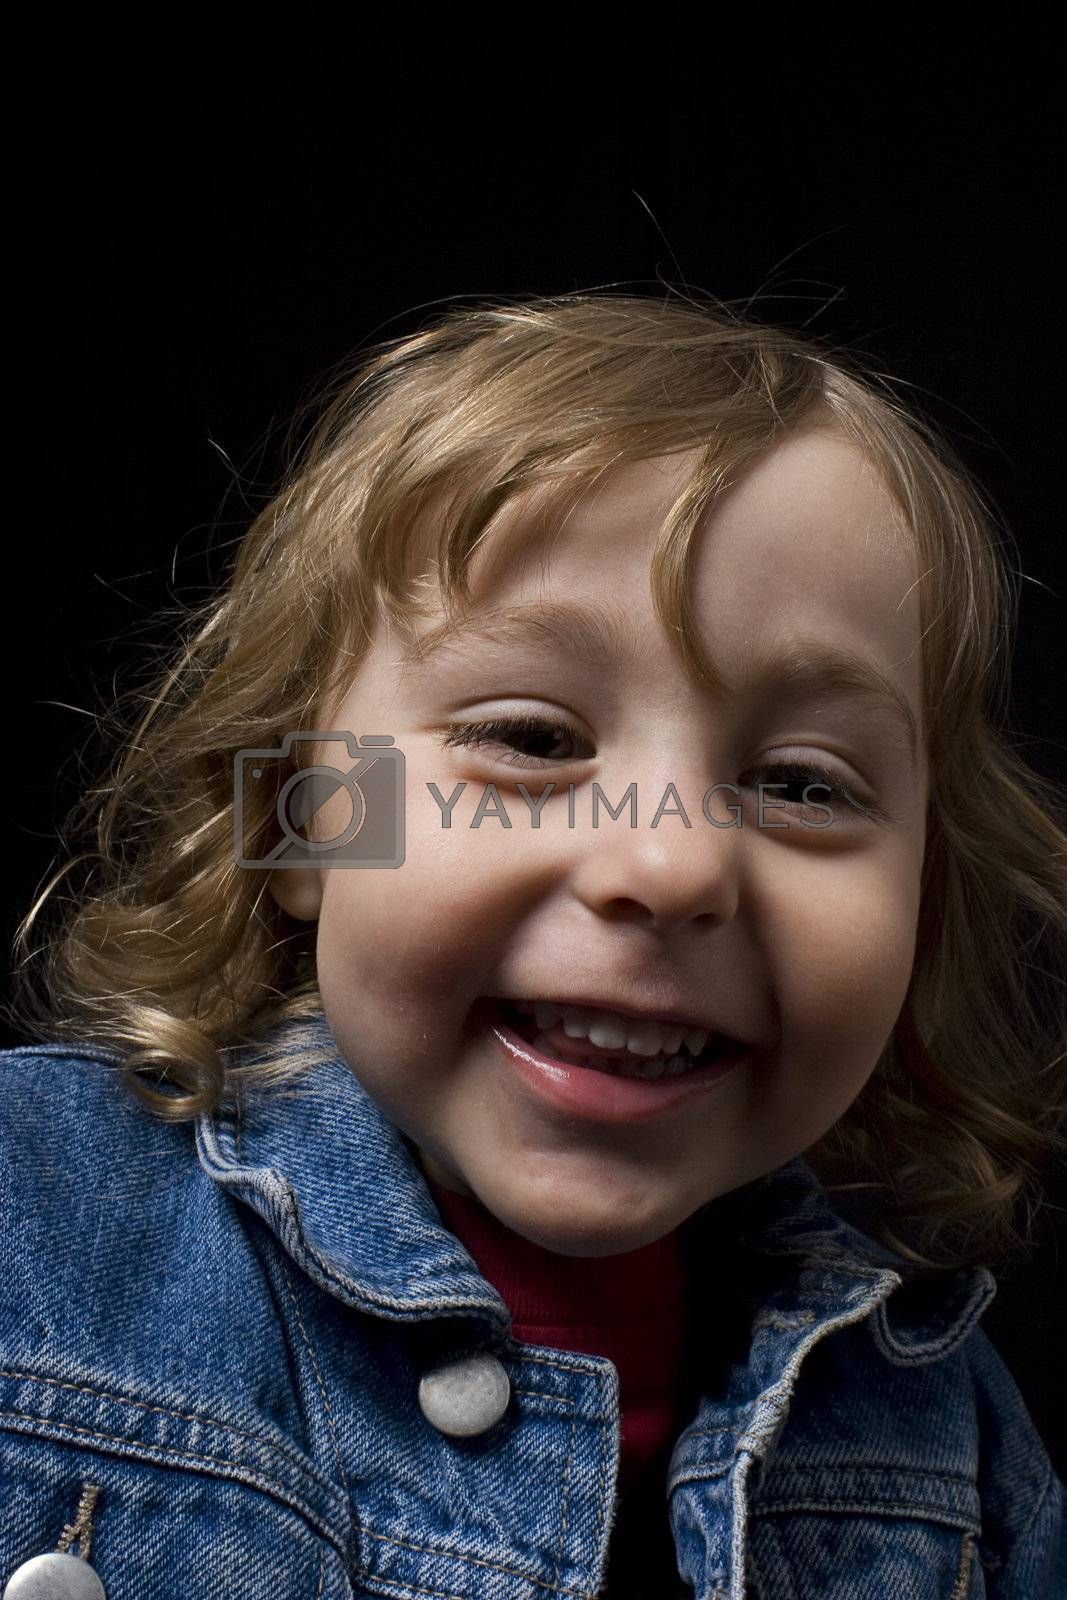 Portrait of a two year old boy wearing a jean jacket laughing